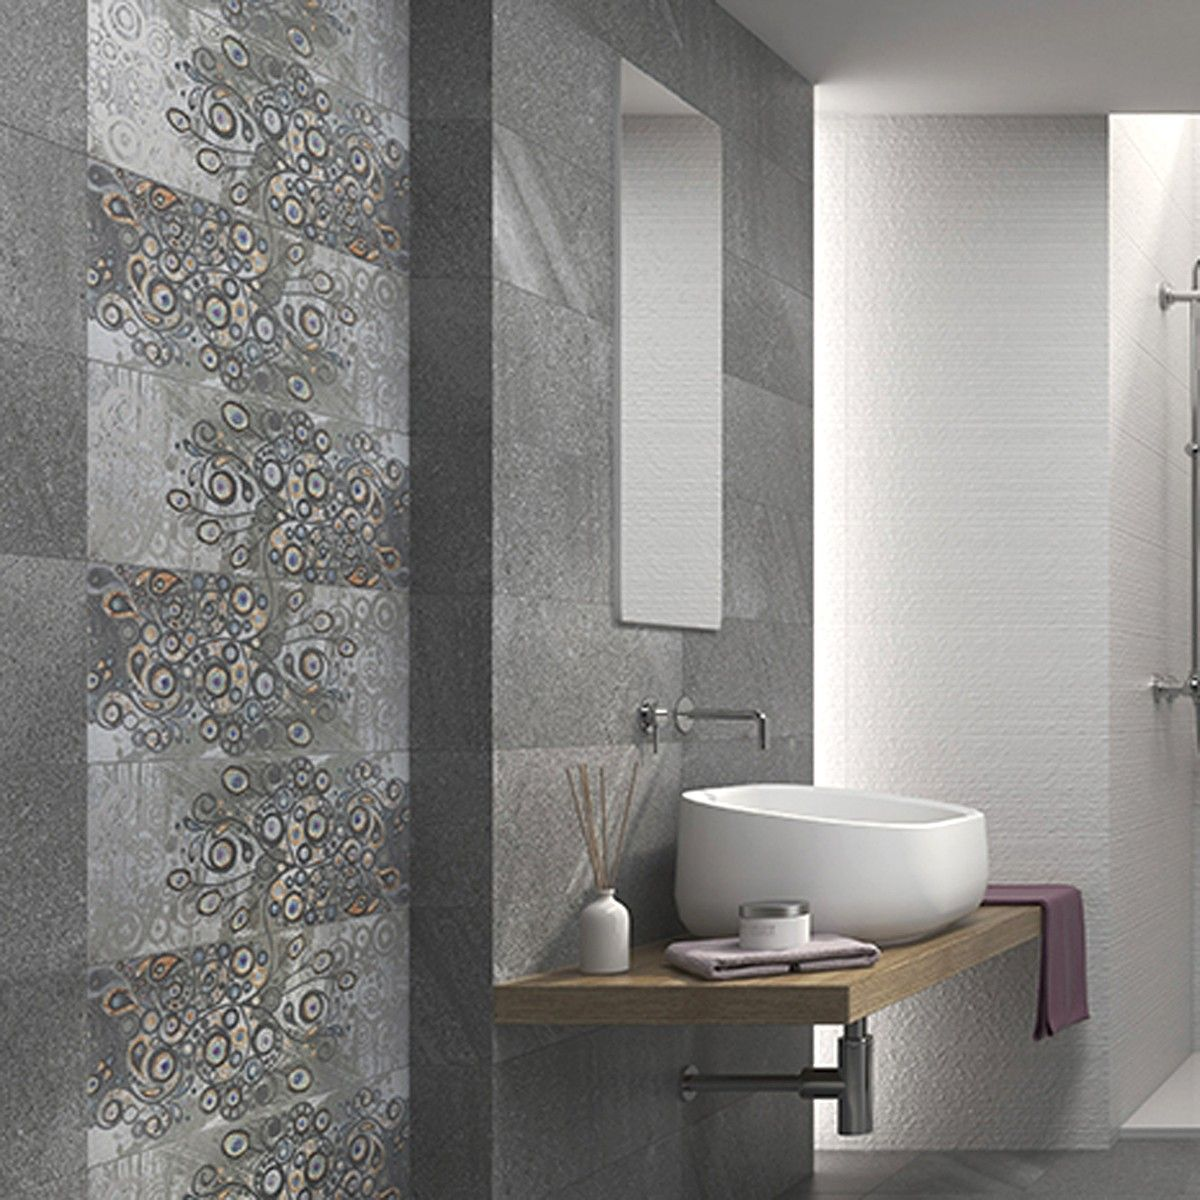 Decorative Wall Tile 58X235 Torino Gris Peacock Decor  Tile Choice  Badhroom Baño